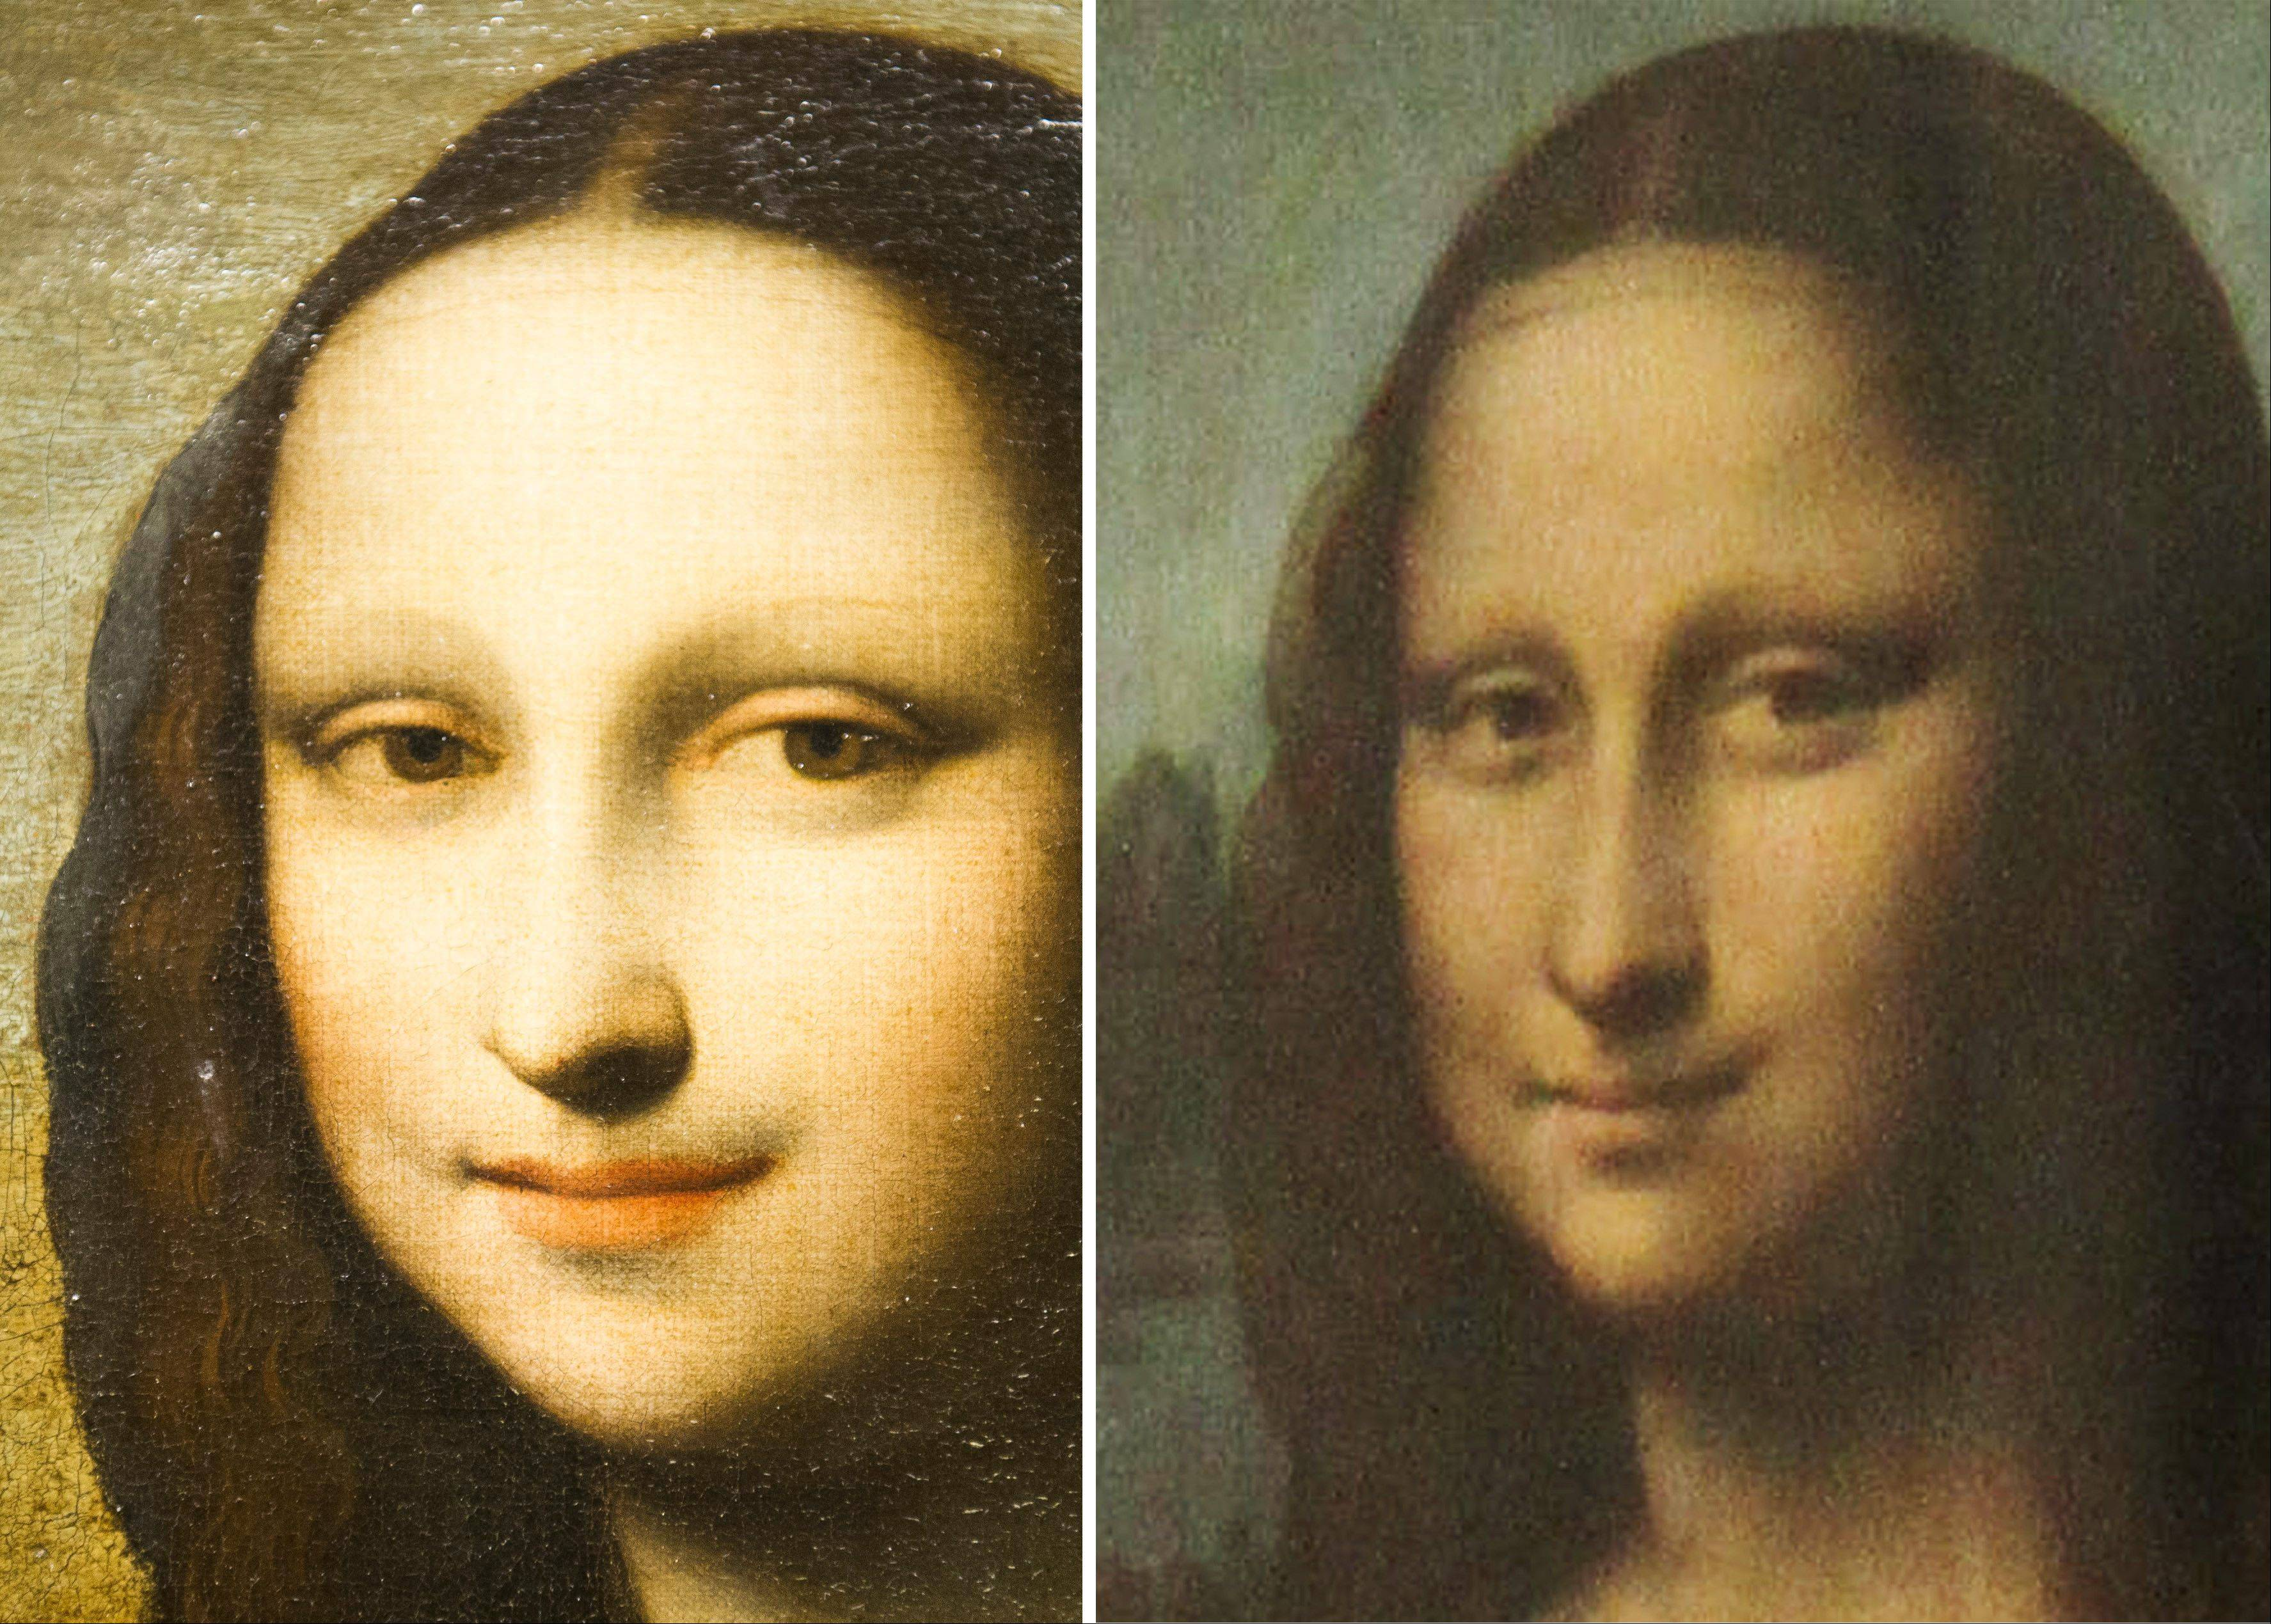 This combination of two photos shows on the left a painting attributed to Leonardo da Vinci representing the Mona Lisa and the famous Mona Lisa painting hanging in the Louvre in Paris.